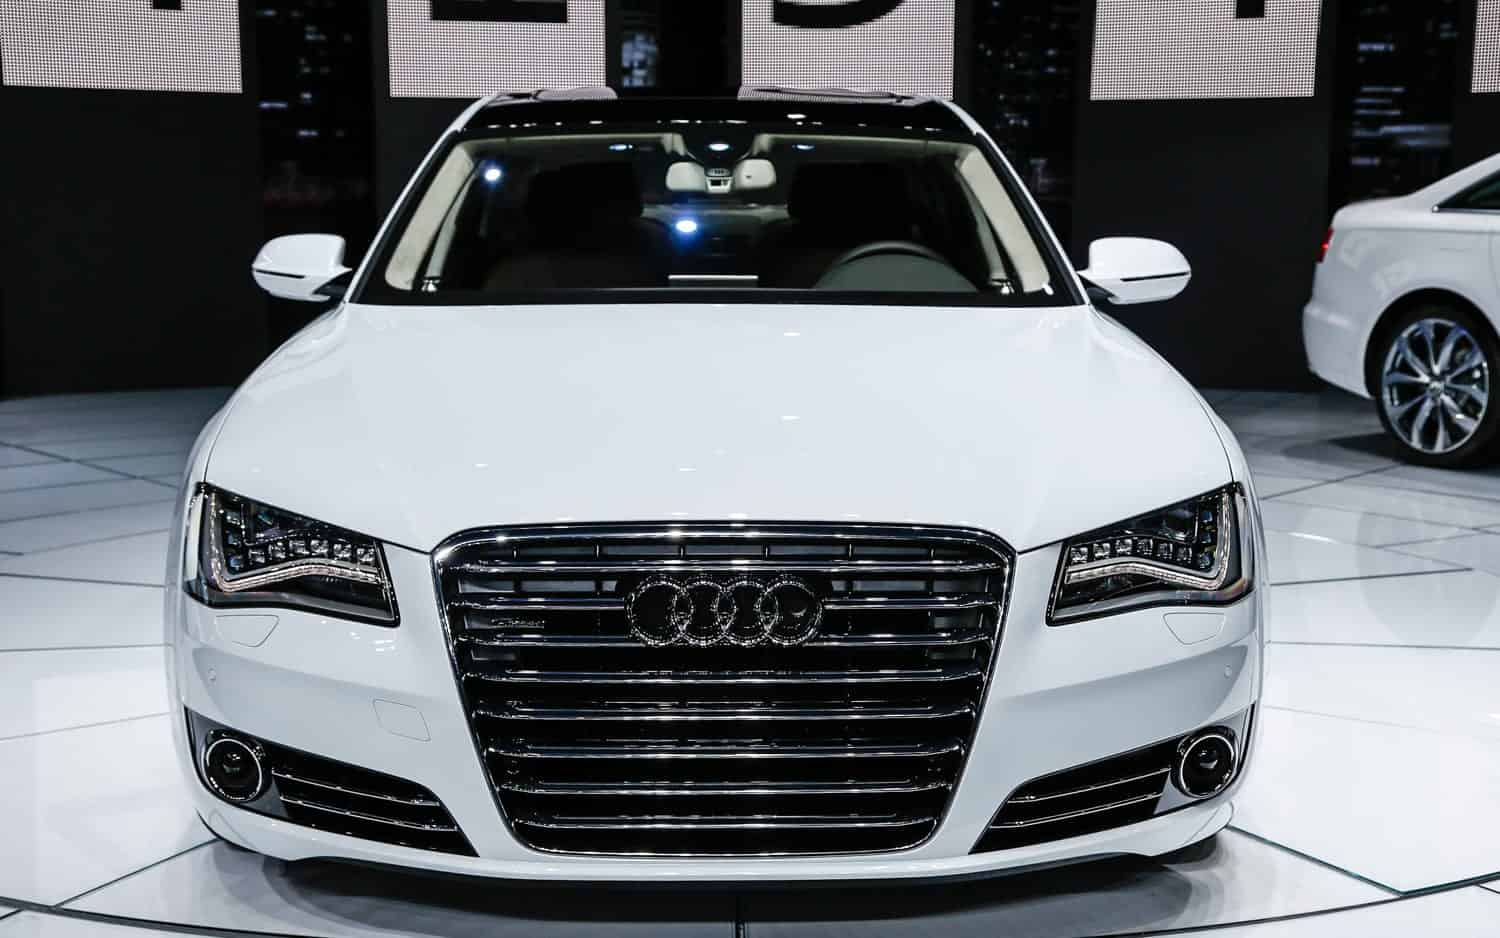 2014-Audi-A8-TDI-front-view